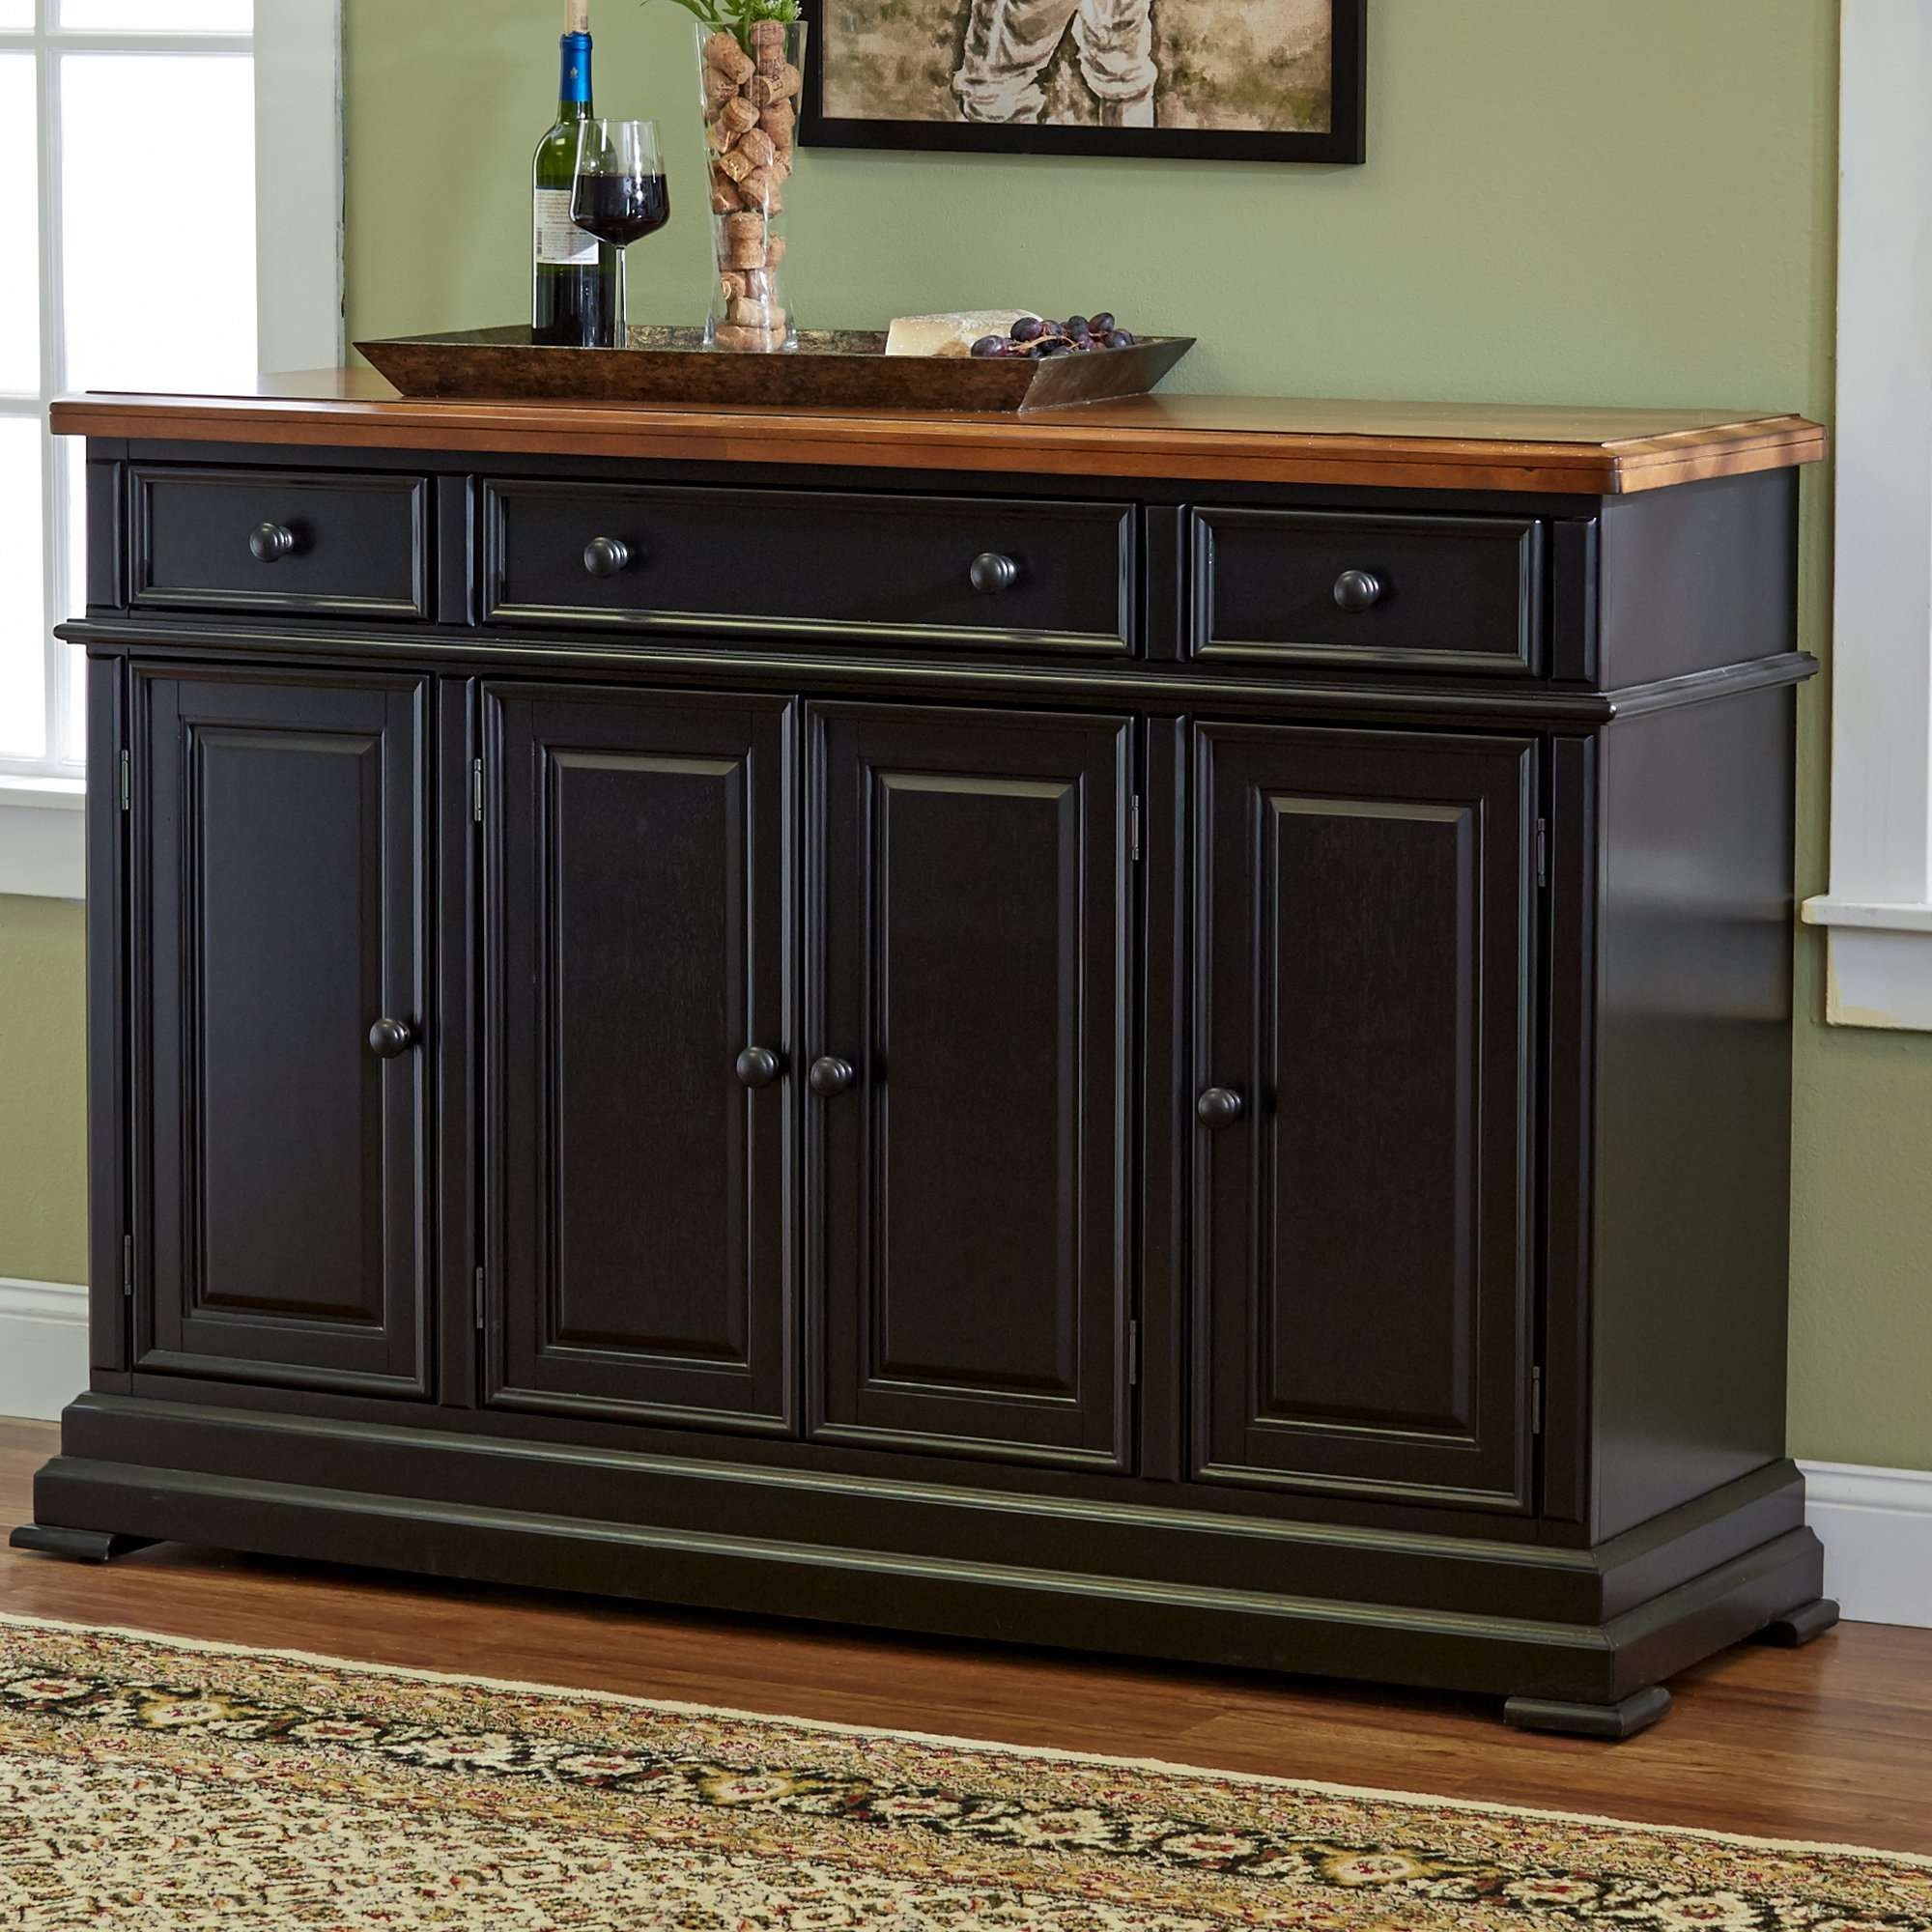 Elegant Sideboard With Hutch – Bjdgjy Throughout Elegant Sideboards (View 12 of 20)